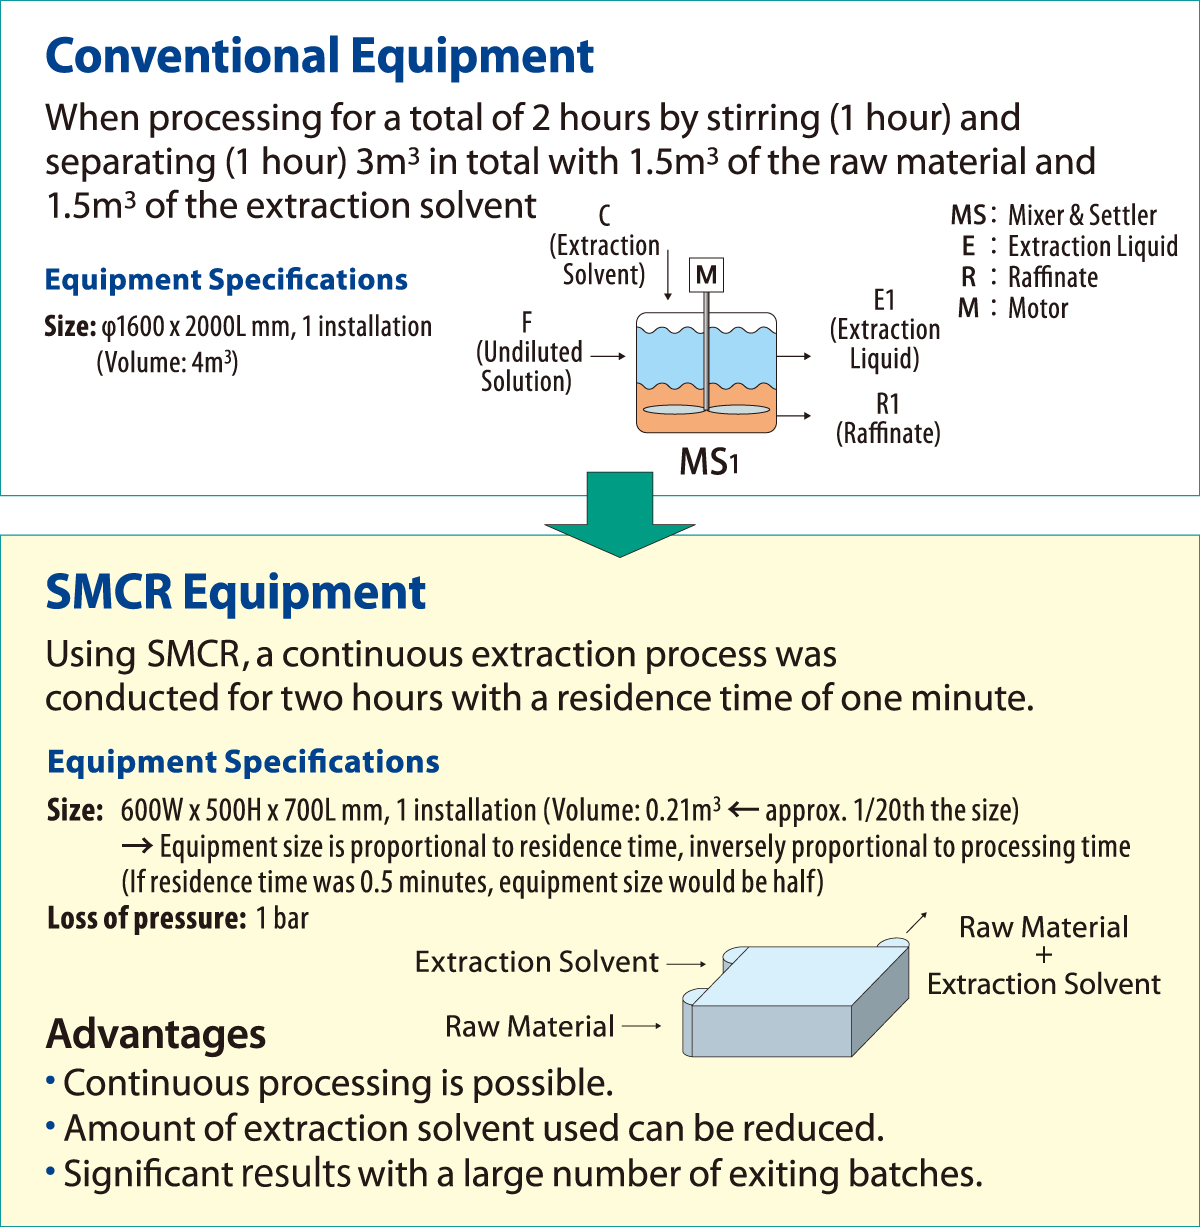 Conventional Equipment to SMCR Equipment